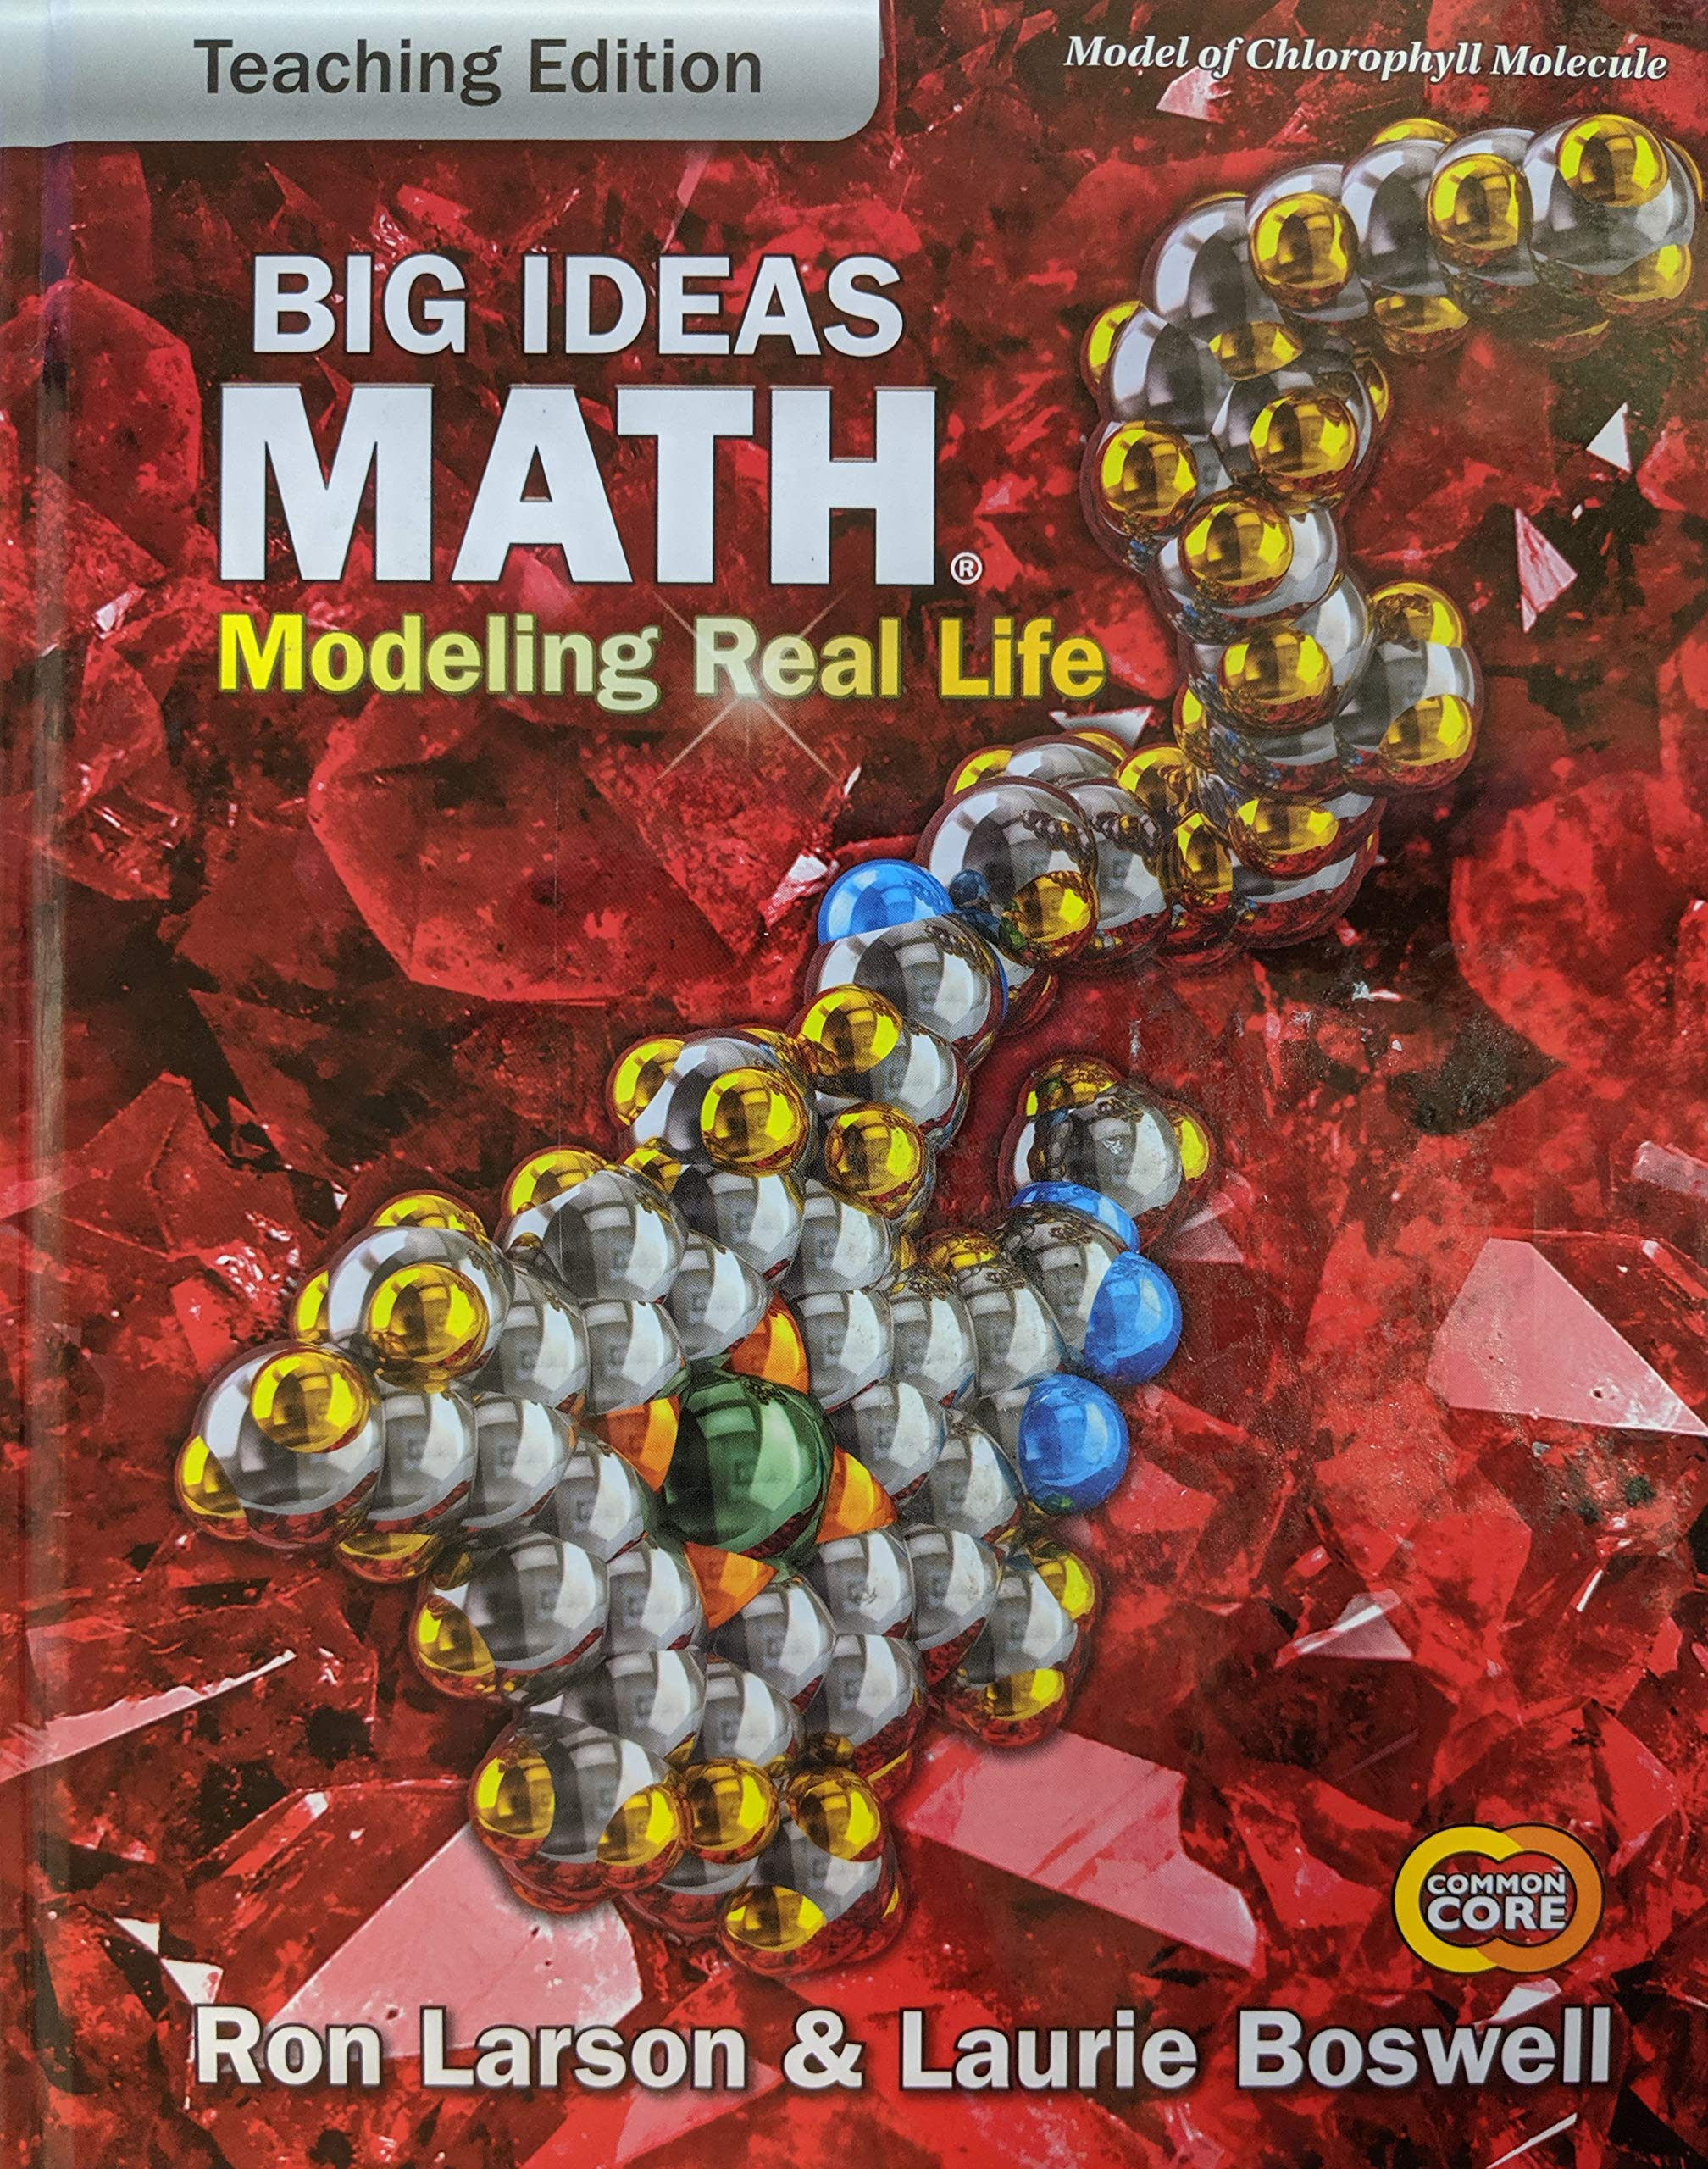 Big Ideas Math: Modeling Real Life Common Core - Grade 7